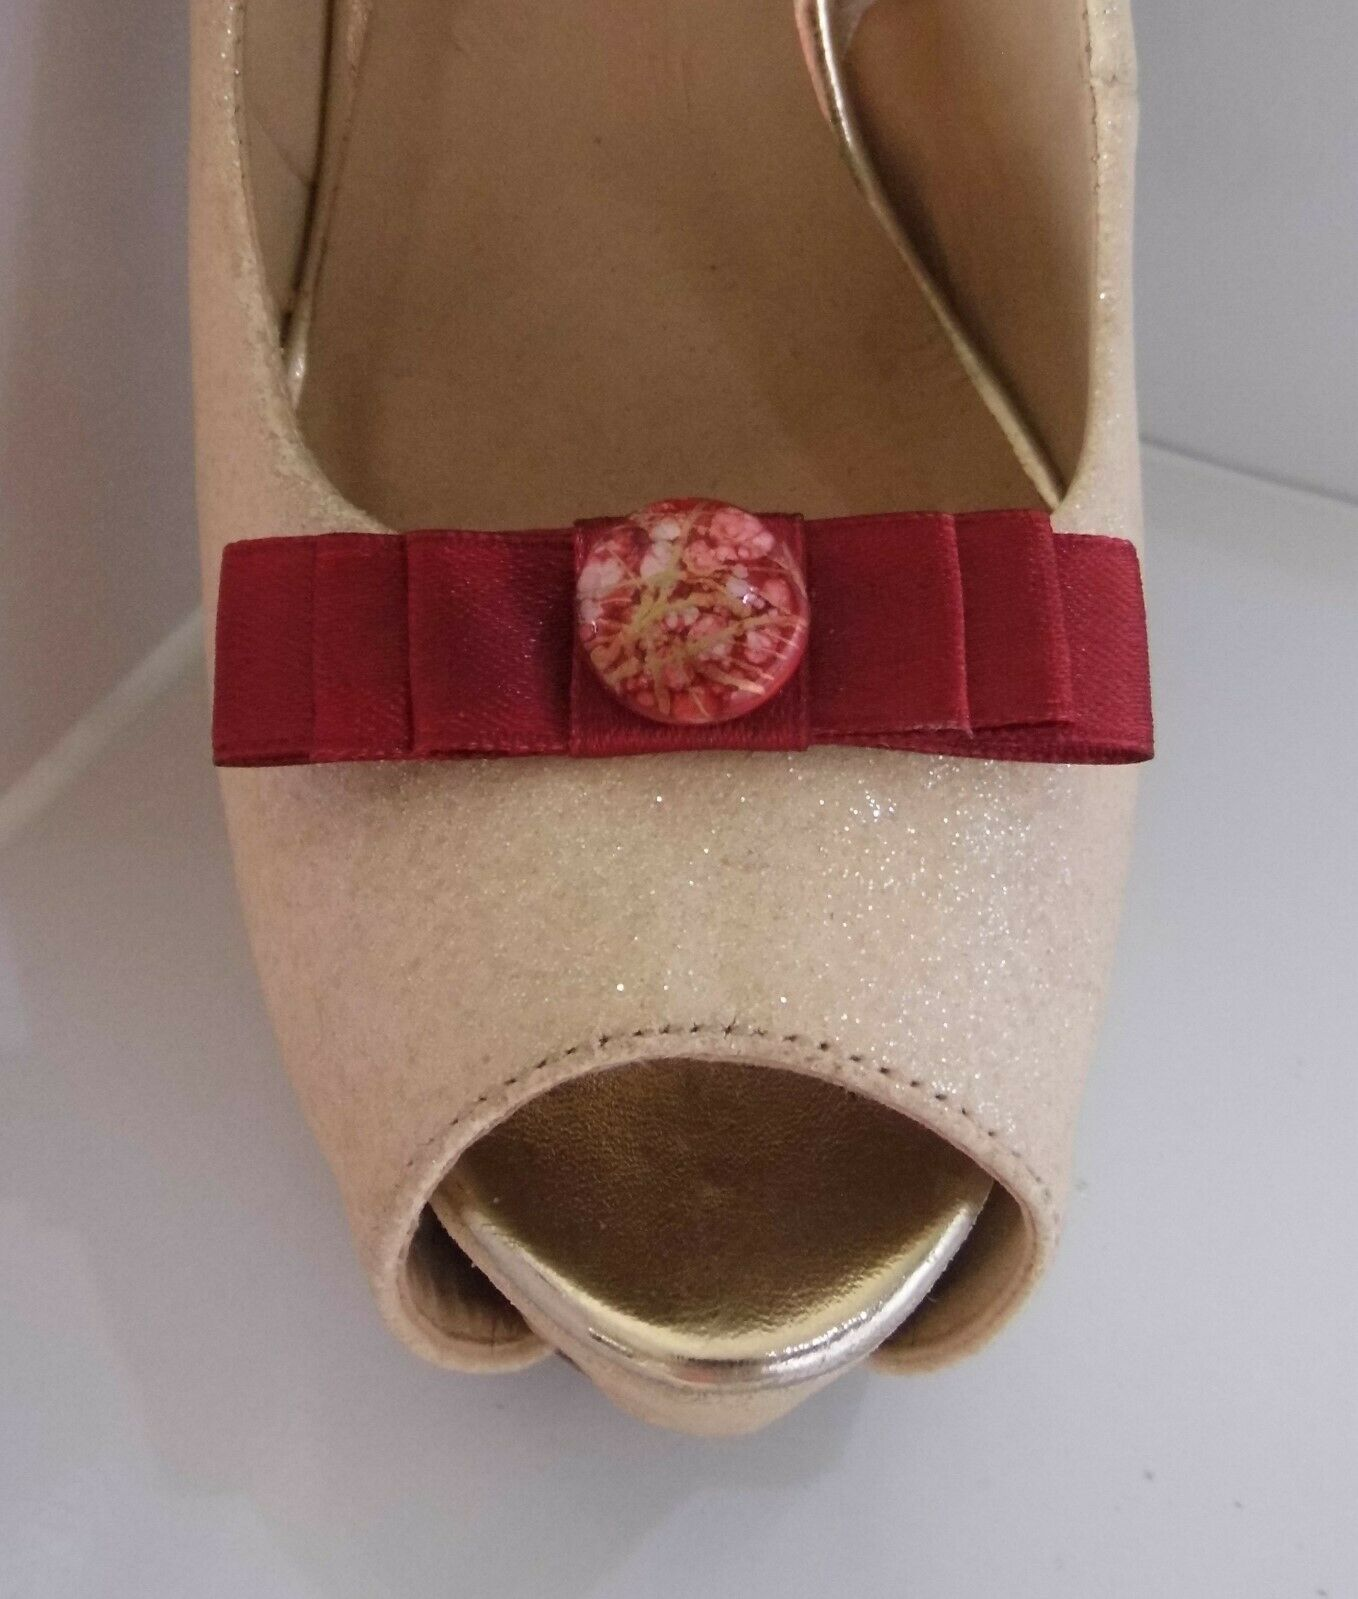 2 Small Burgundy Red Bow Clips for Shoes with Marble Style Button Centre